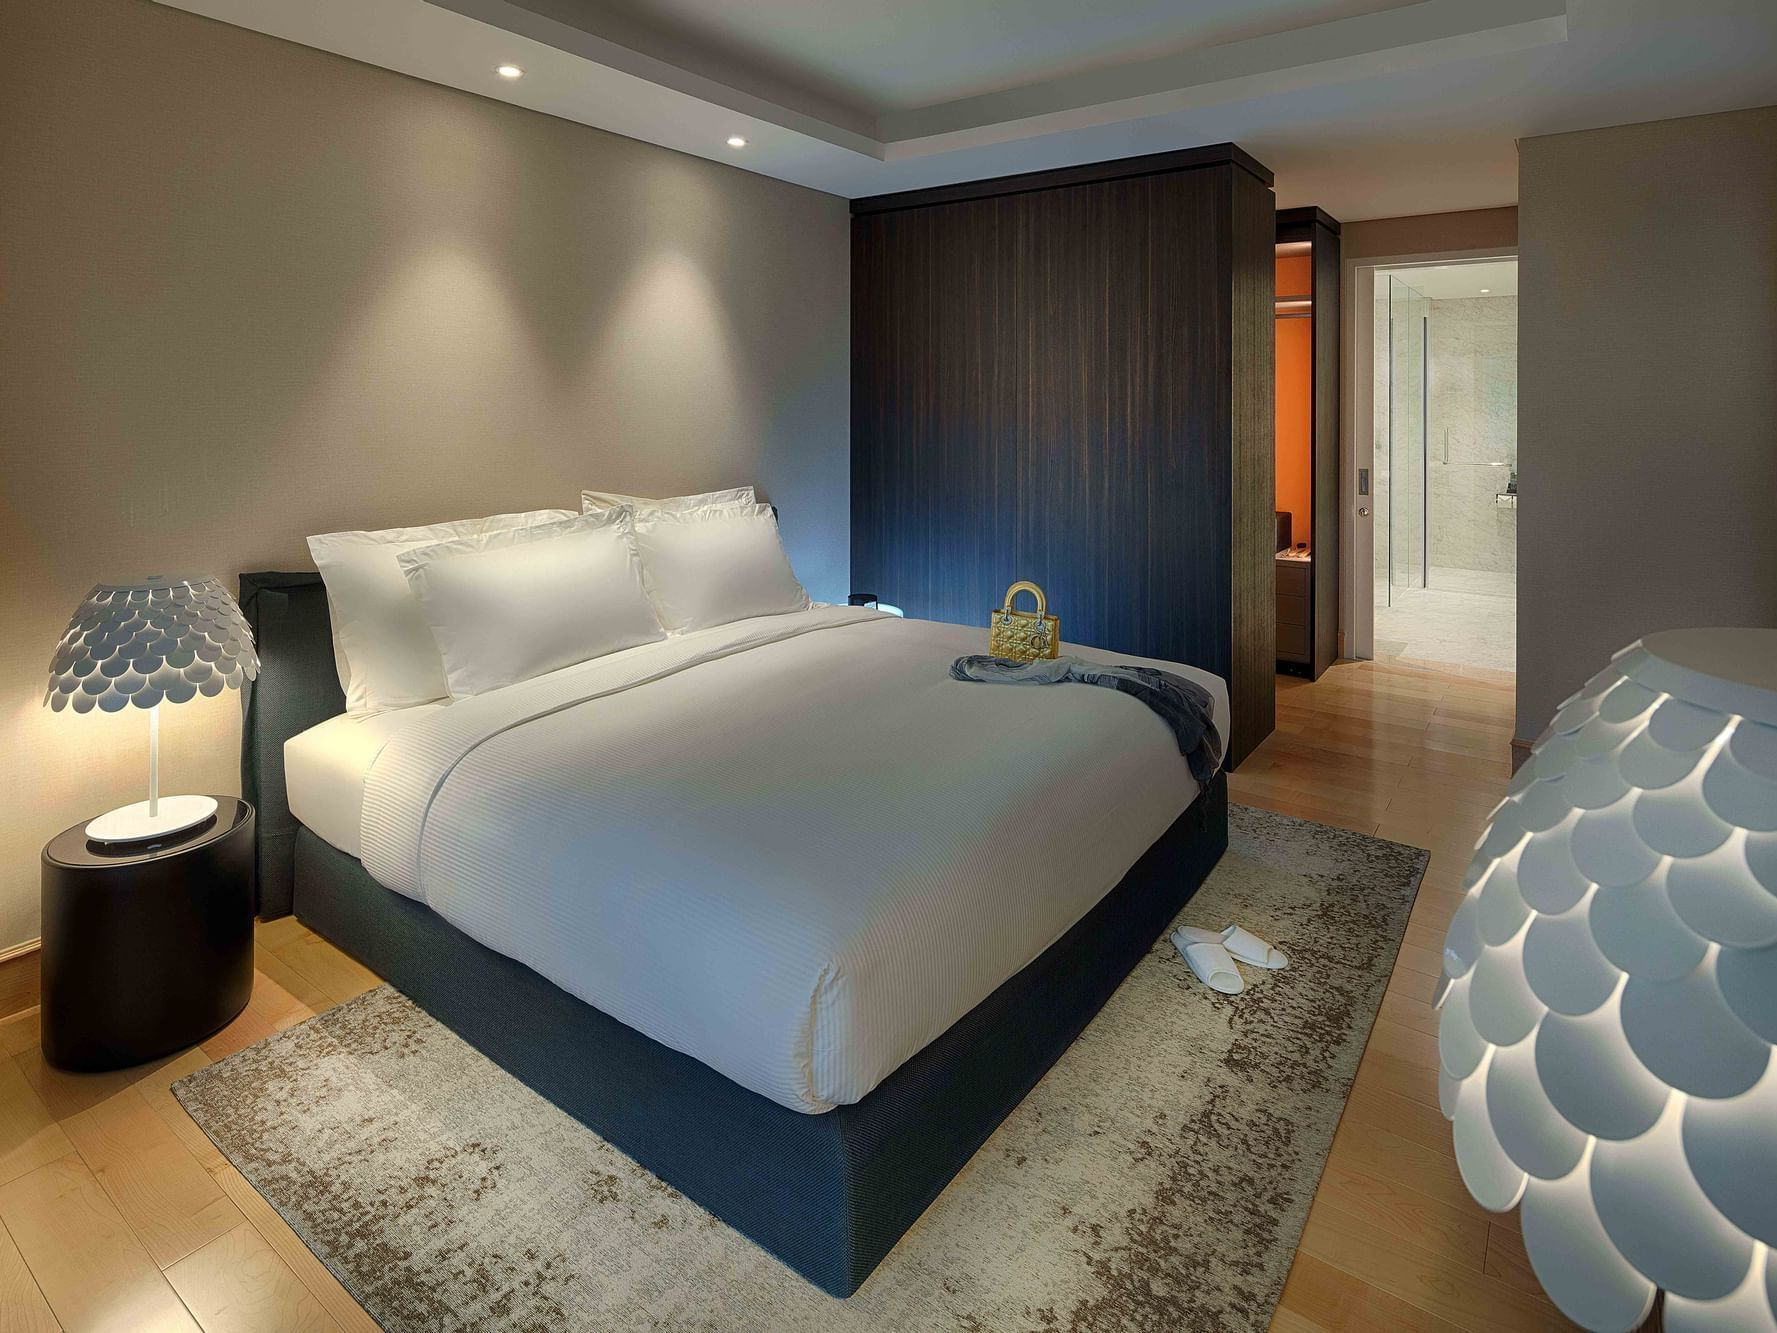 luxurious hotel room with king bed